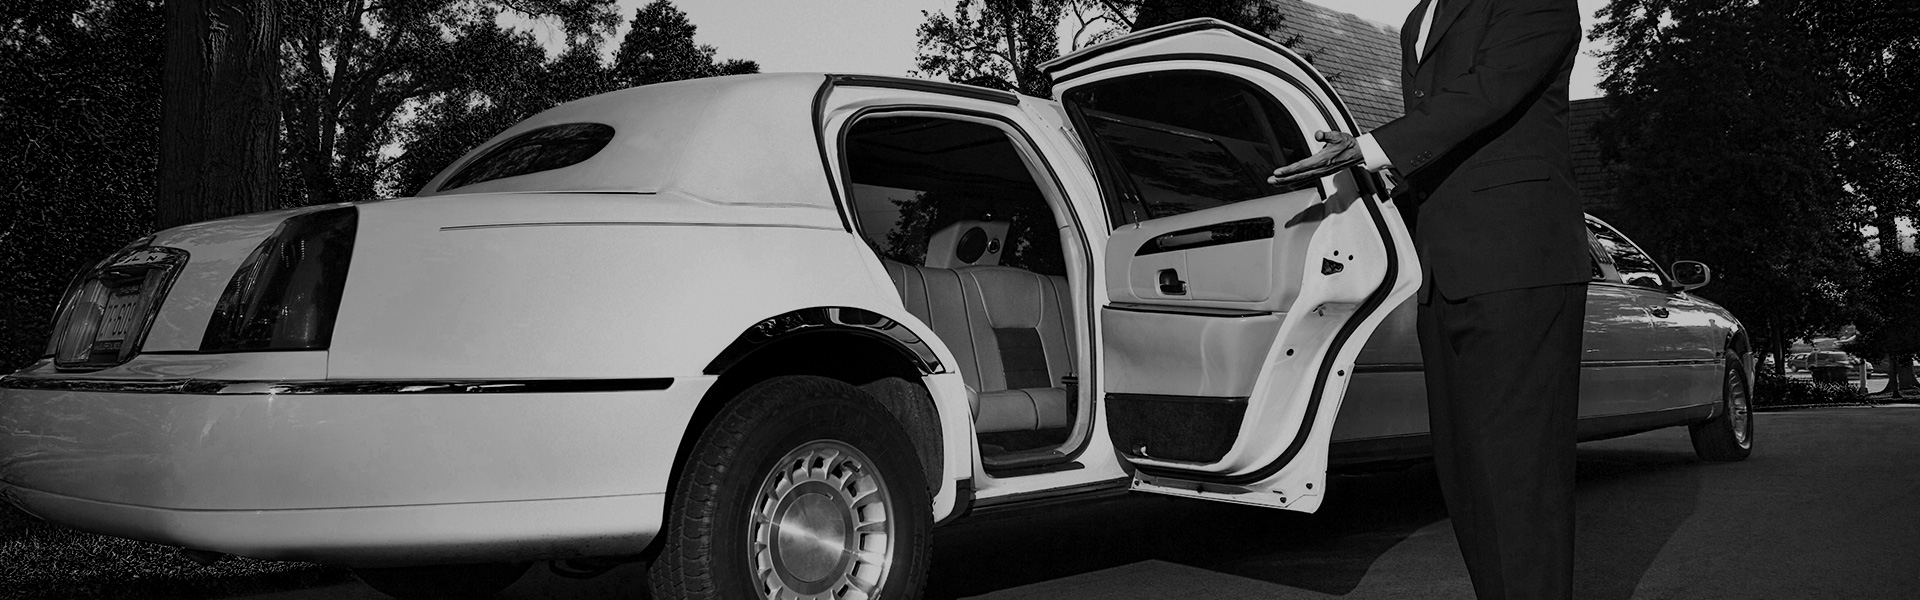 Airport Pick-up Limousine Service (white limo)